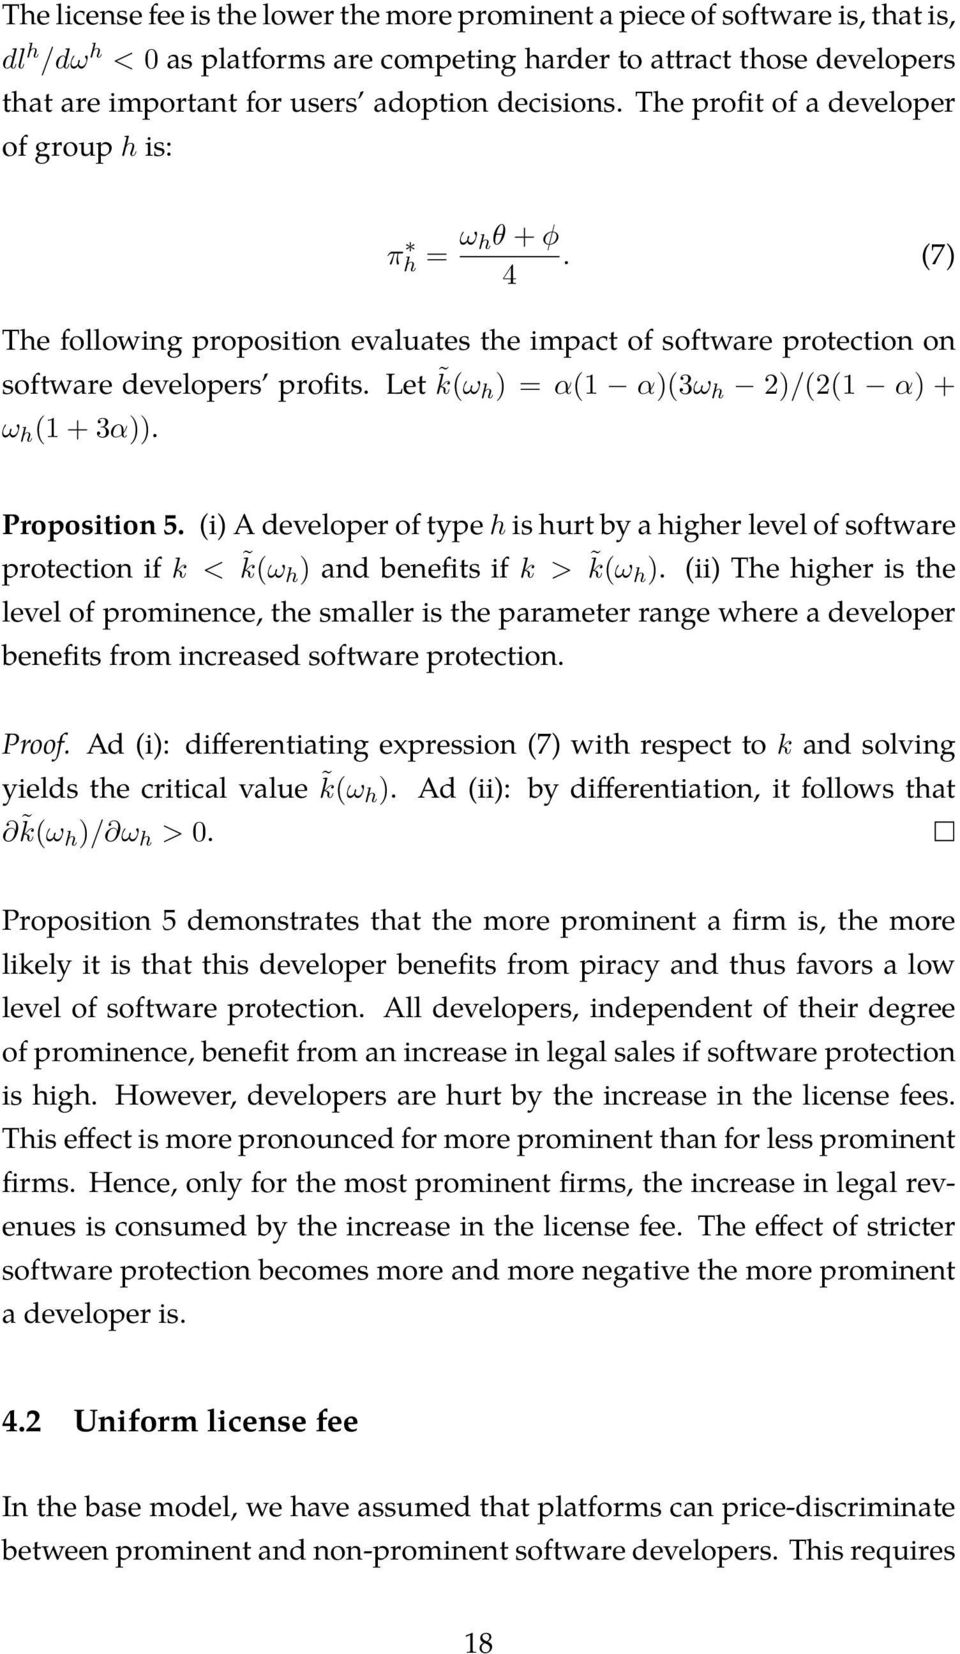 Let k(ω h ) = α(1 α)(3ω h 2)/(2(1 α) + ω h (1 + 3α)). Proposition 5. (i) A developer of type h is hurt by a higher level of software protection if k < k(ω h ) and benefits if k > k(ω h ).